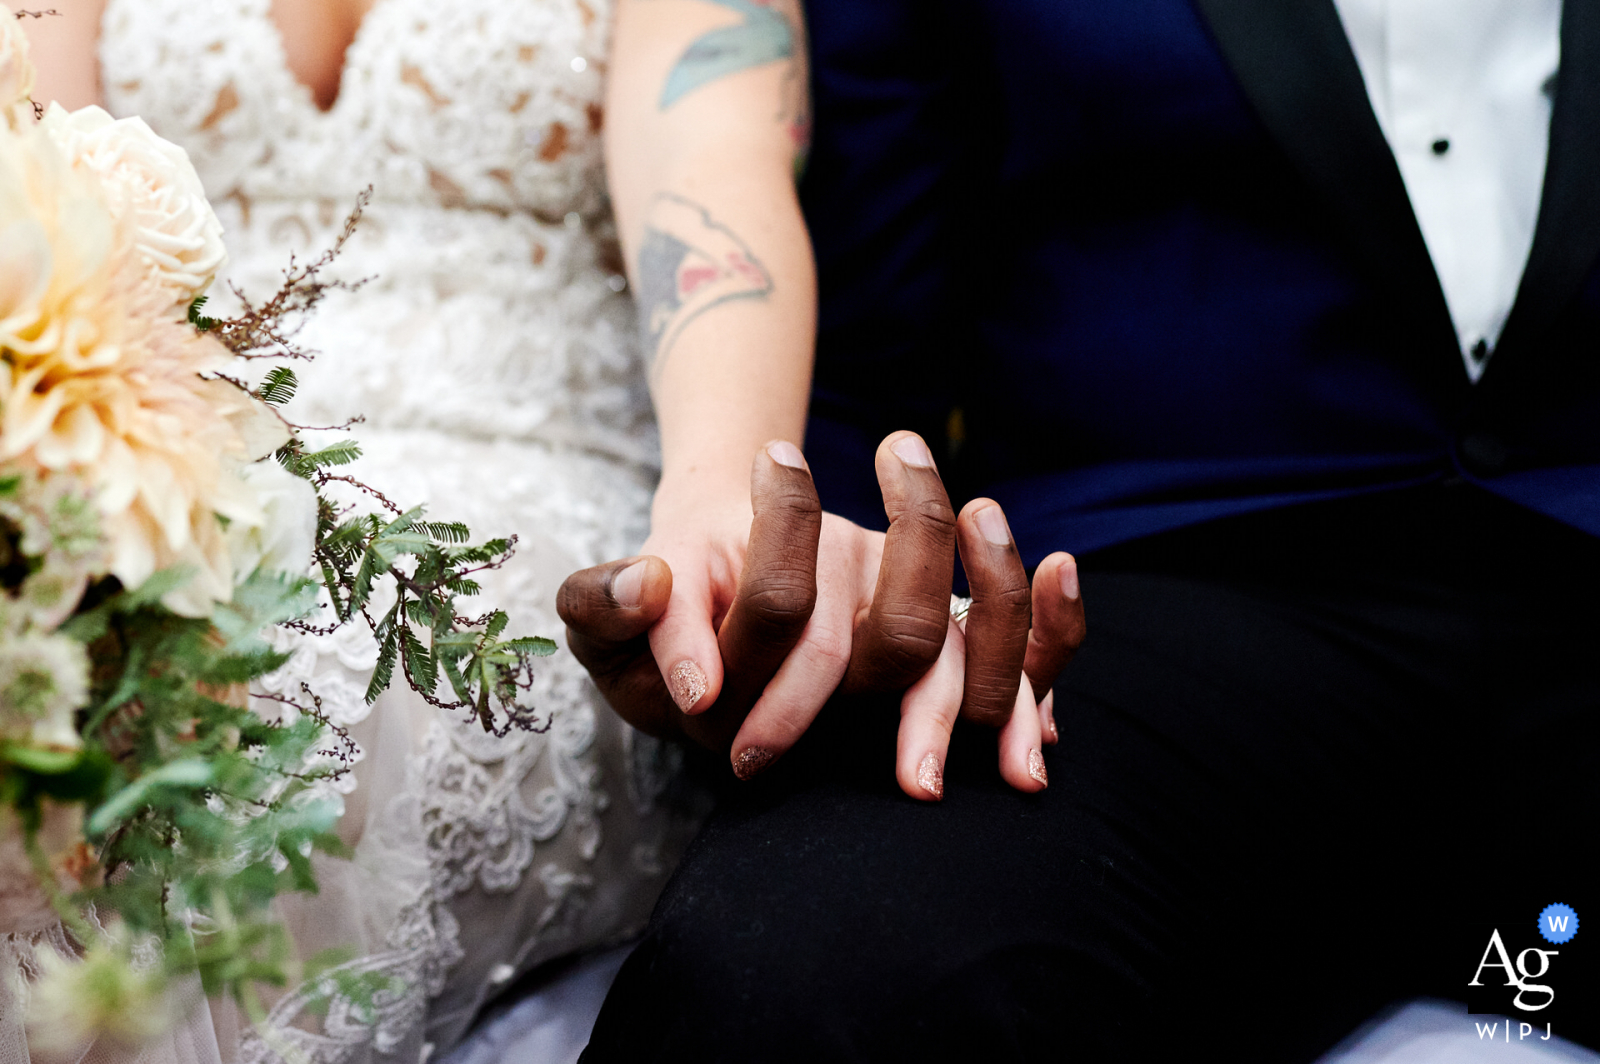 Creative wedding photo from a Church in Croydon, UK of the Bride and groom holding hands